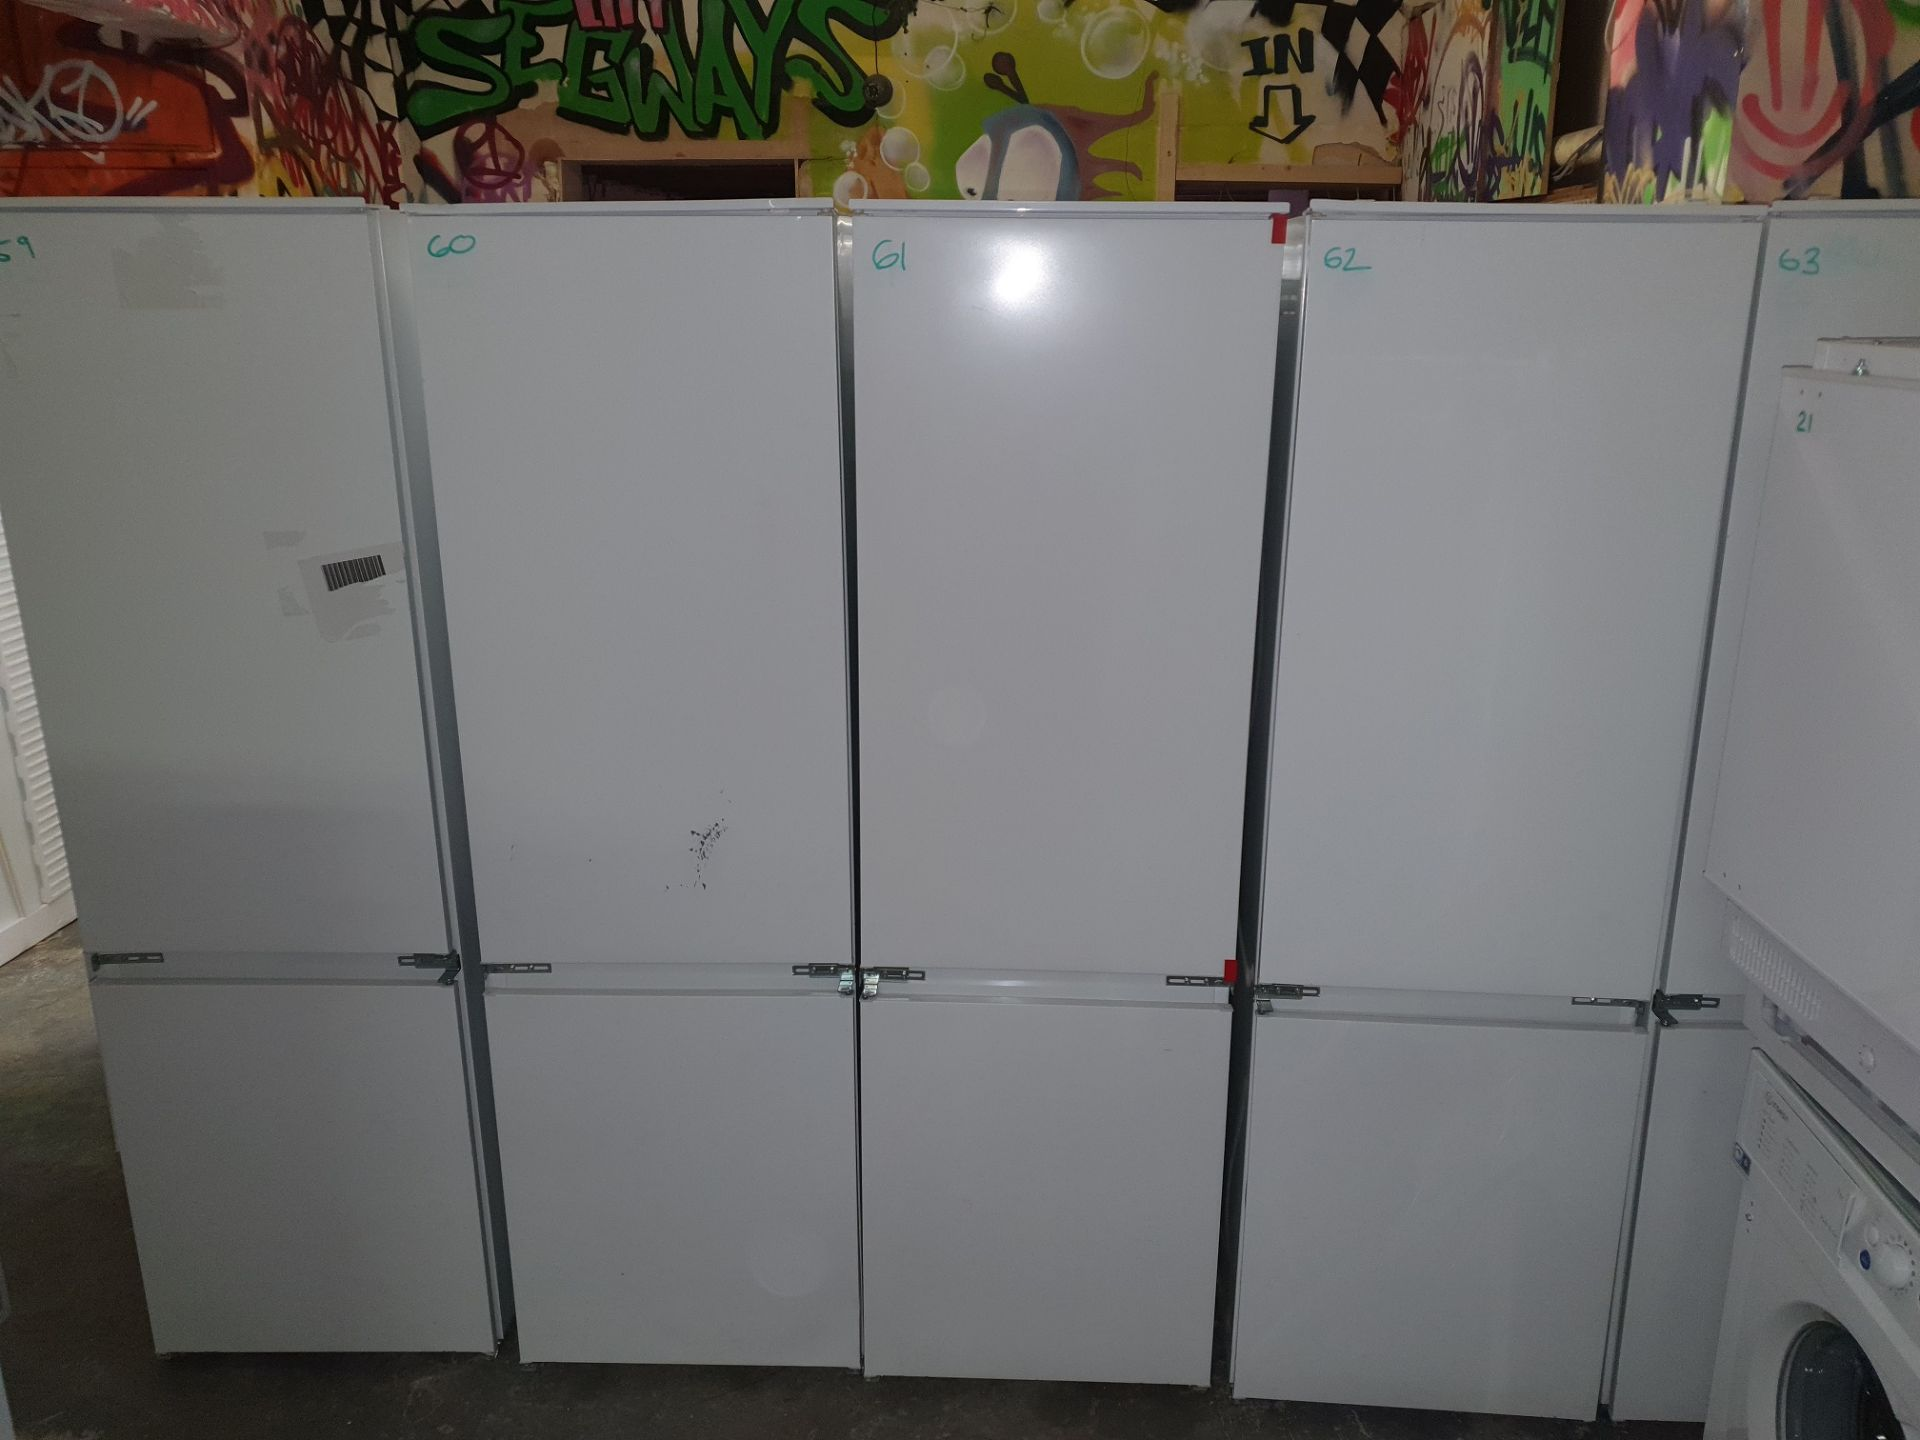 NEW/GRADED AND PACKAGED Prima PRRF208 Tall 177.6cm Integrated Larder Fridge (Slight external - Image 2 of 14